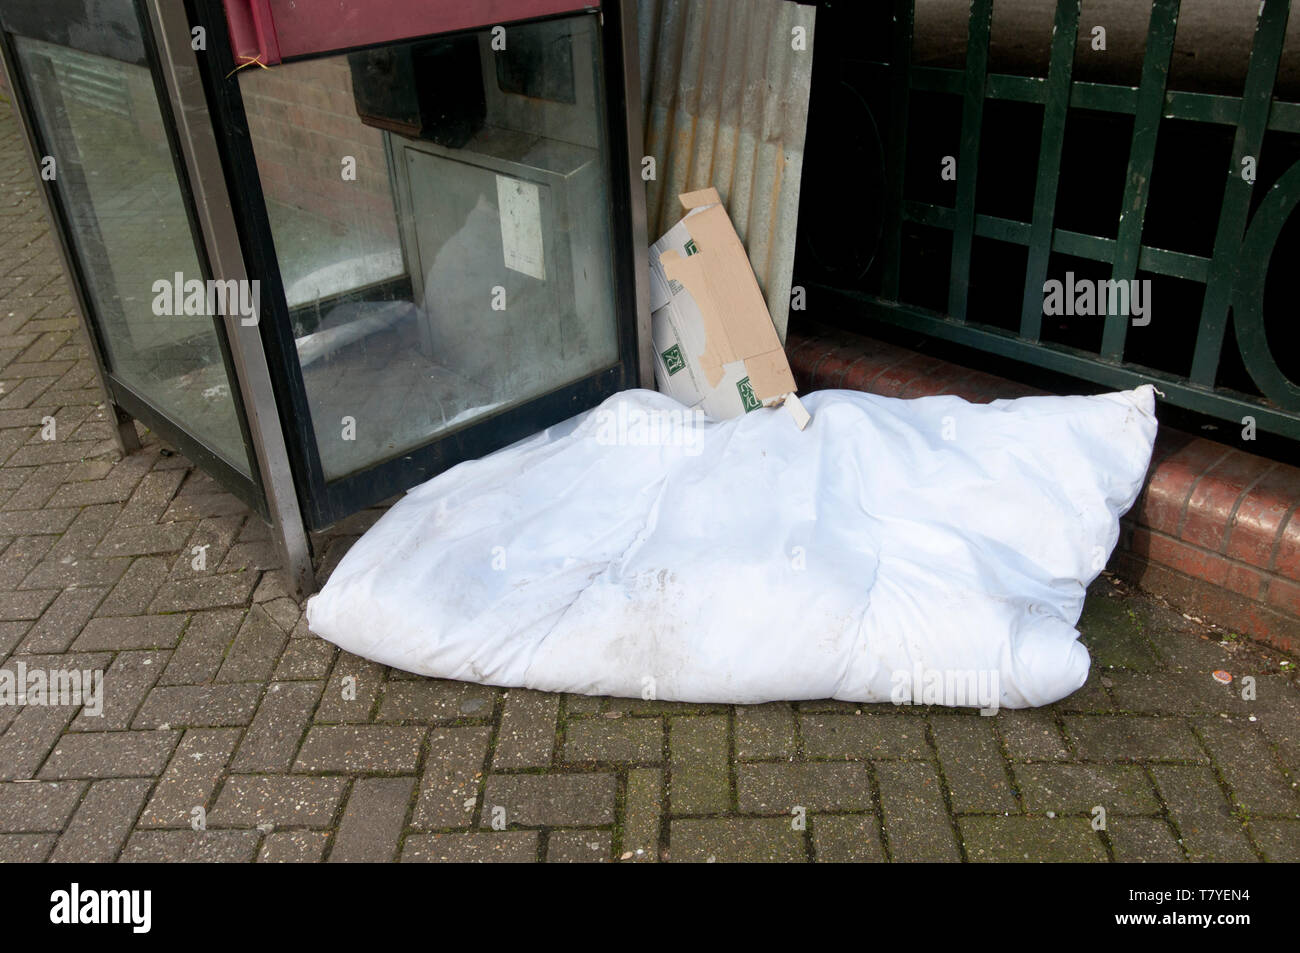 London, Hackney. Duvet bandoned by a rough sleeper, next to a phonebox. - Stock Image